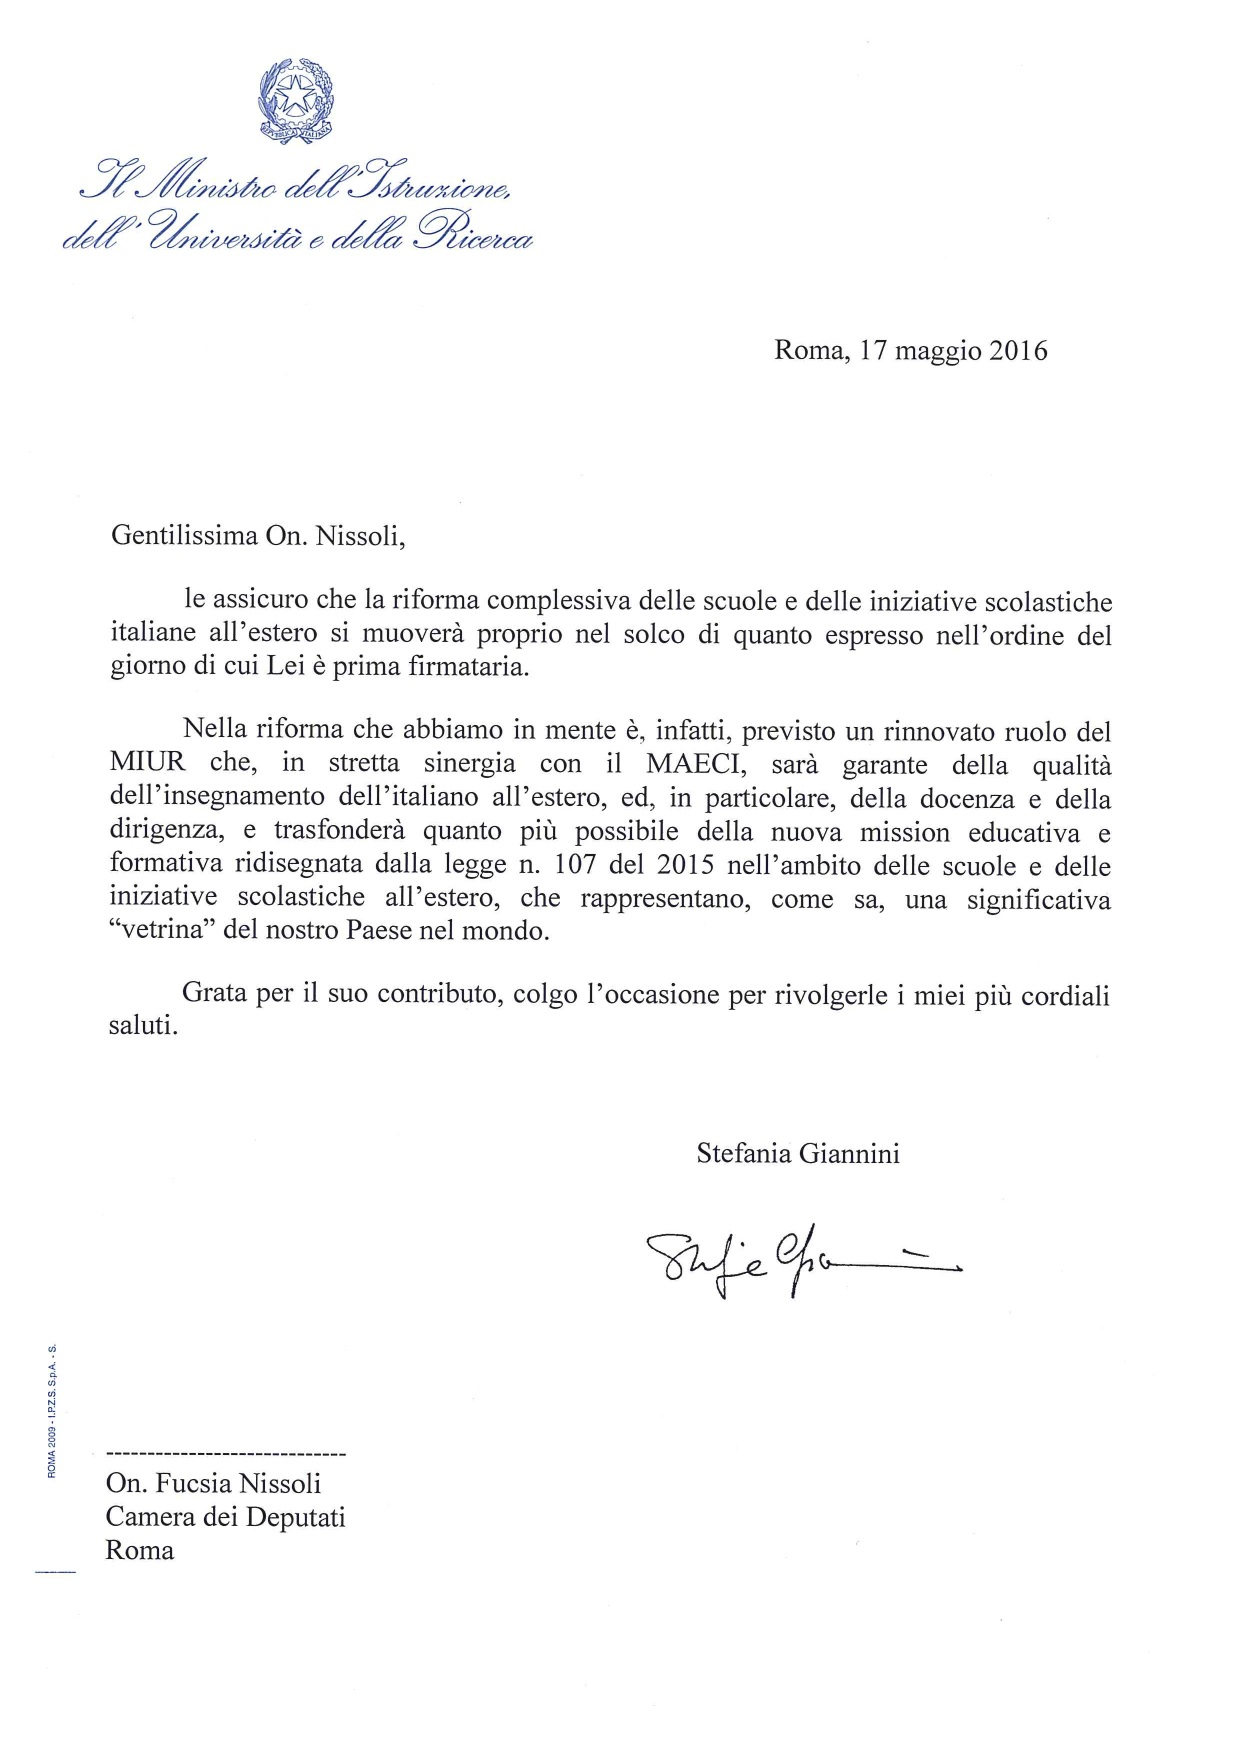 Nota On Nissoli dal ministro Giannini